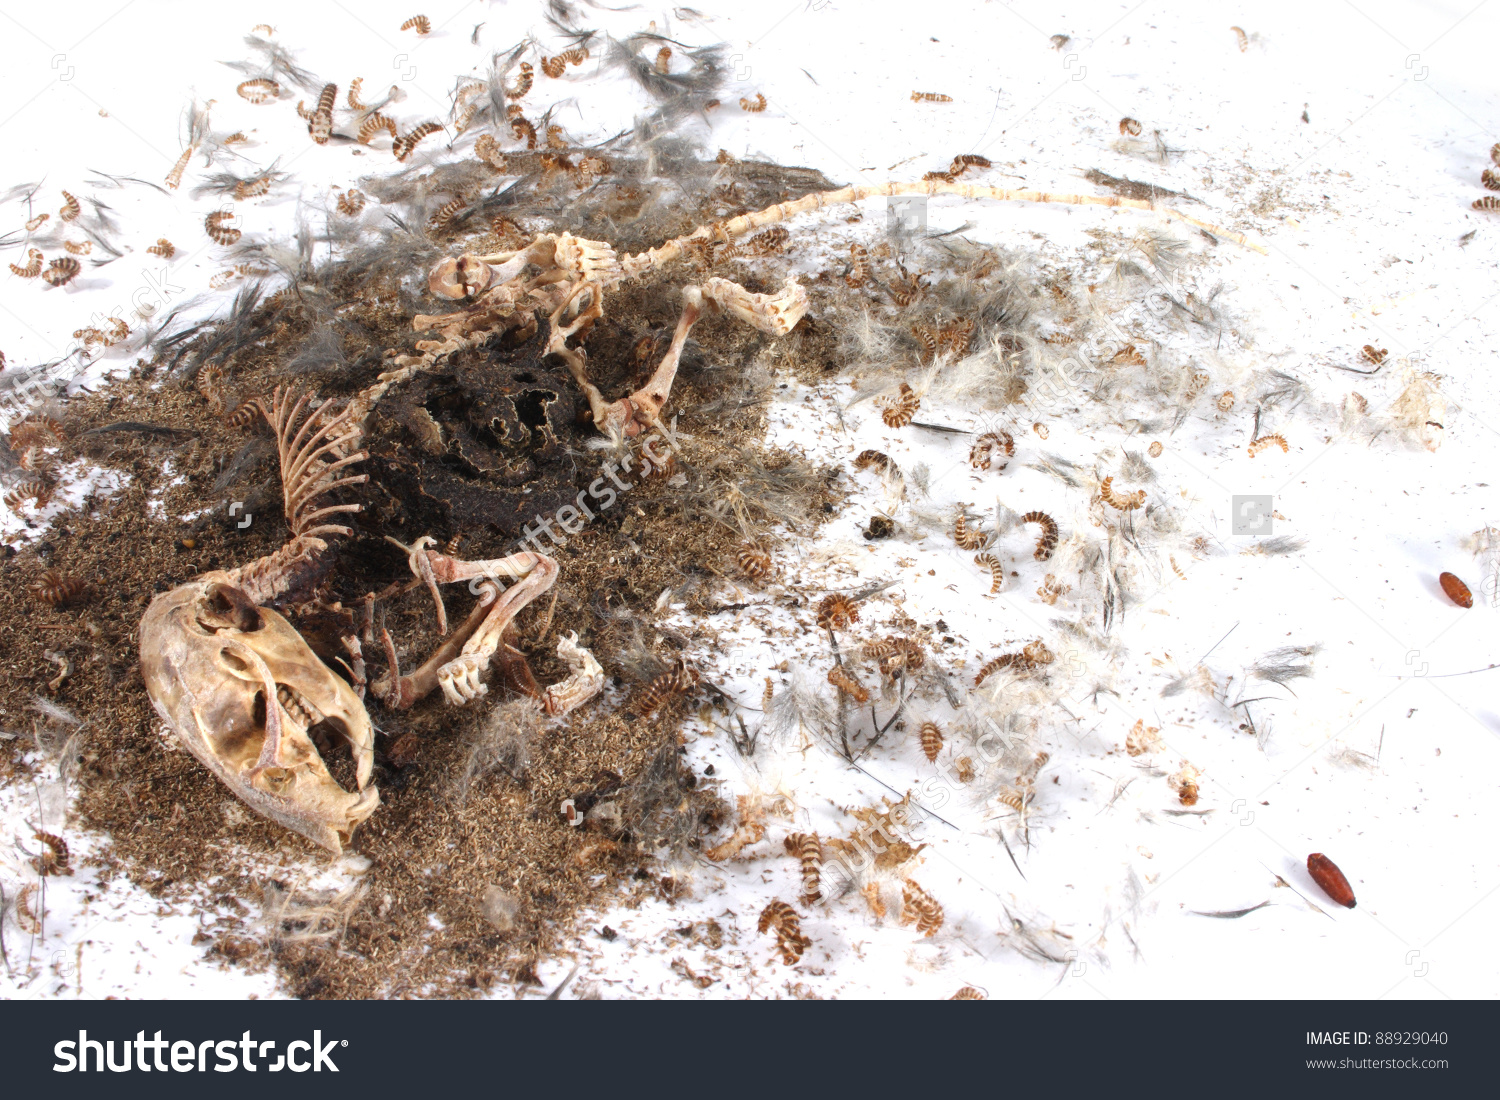 Decomposing Life Cycle Grey Field Mouse Stock Photo 88929040.